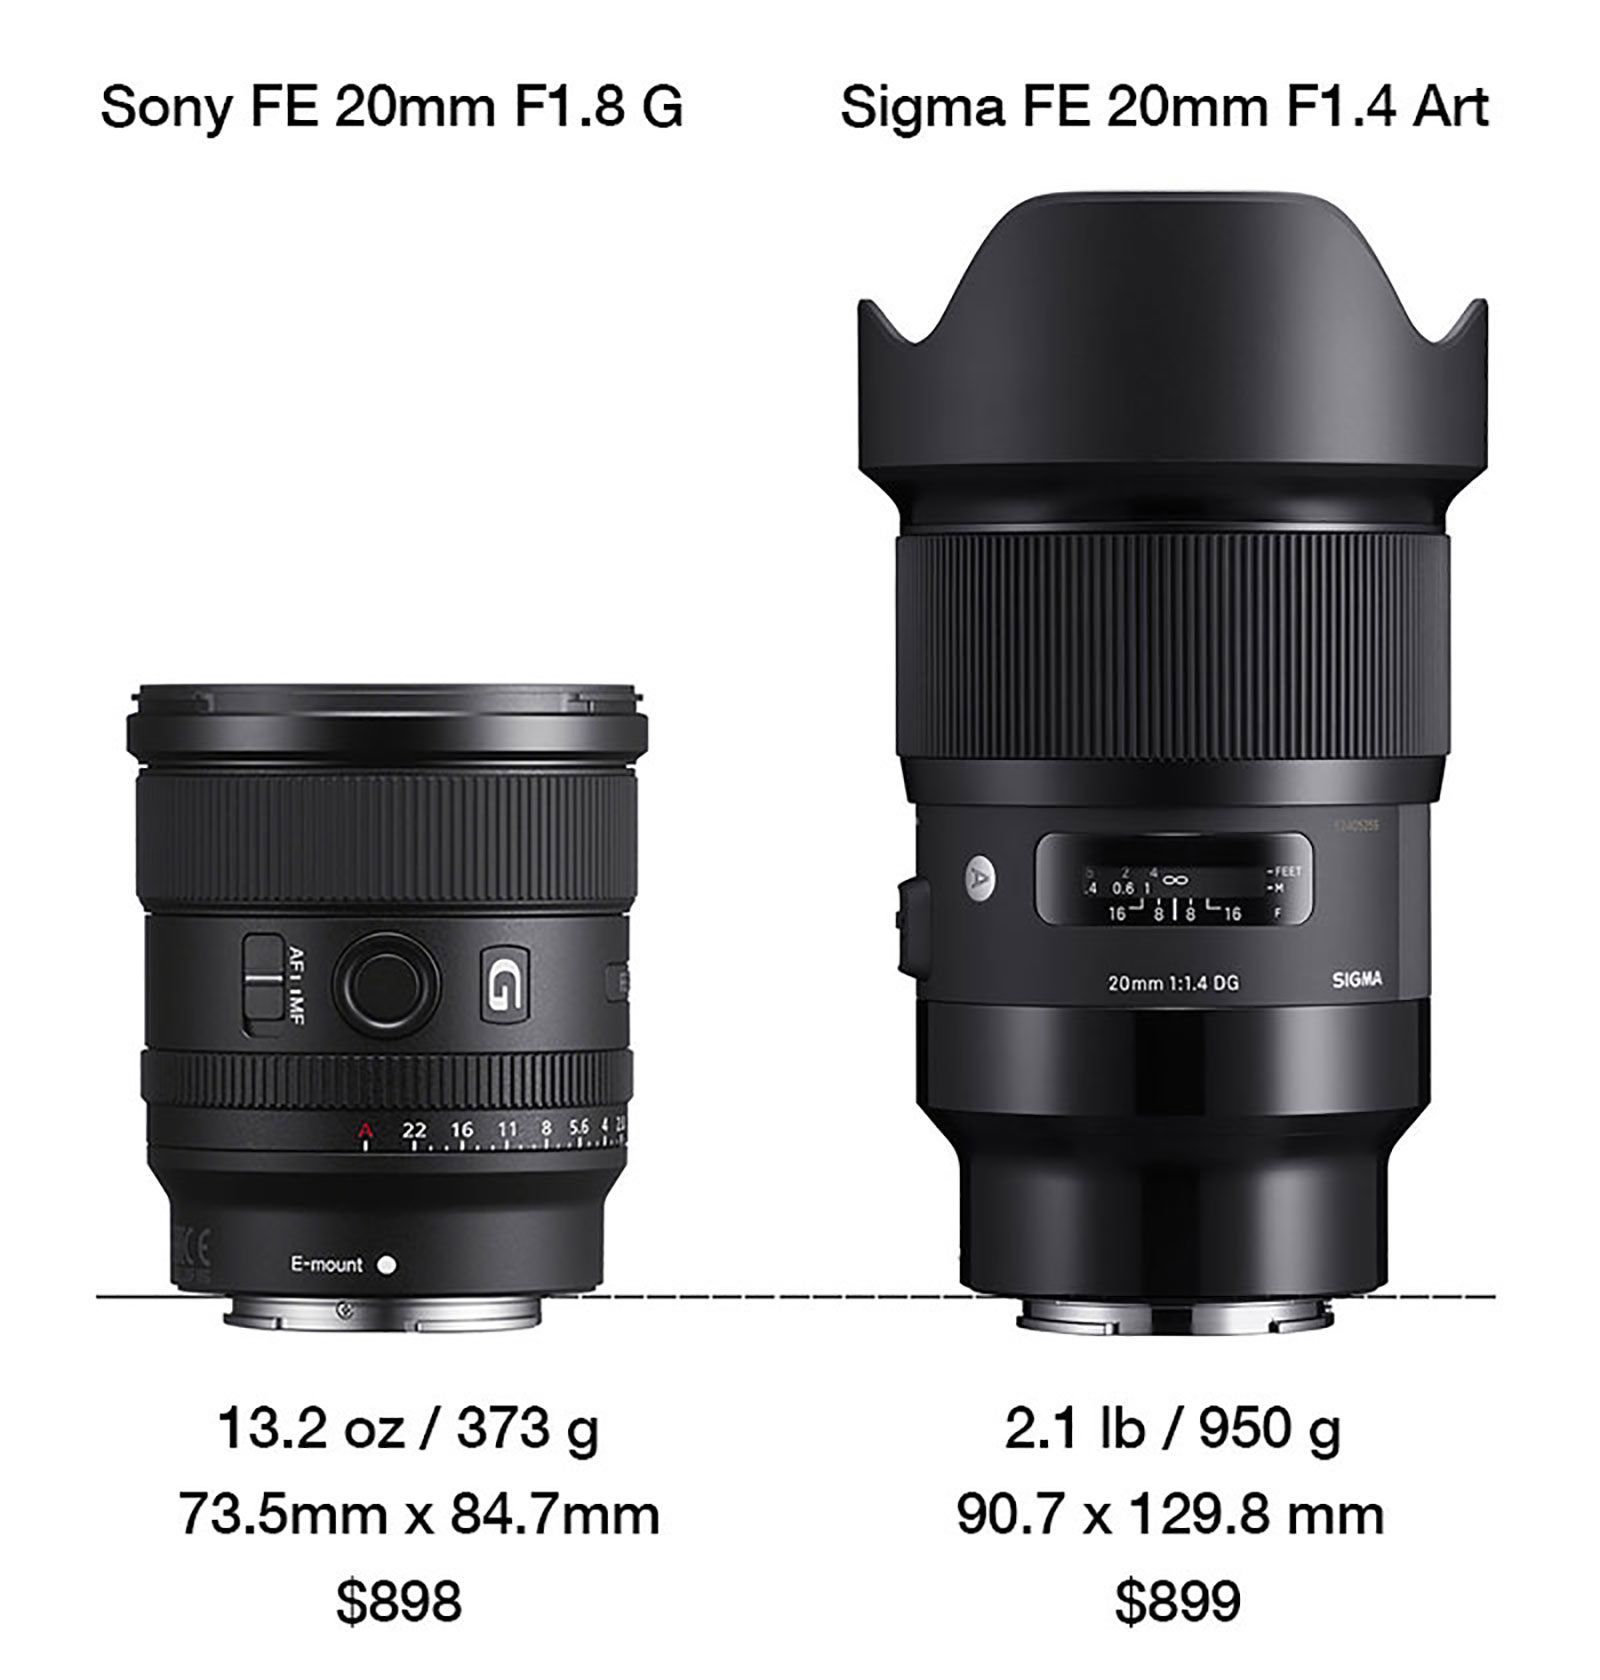 Sony FE 20mm F1.8 G vs Sigma 20mm F1.4 Art